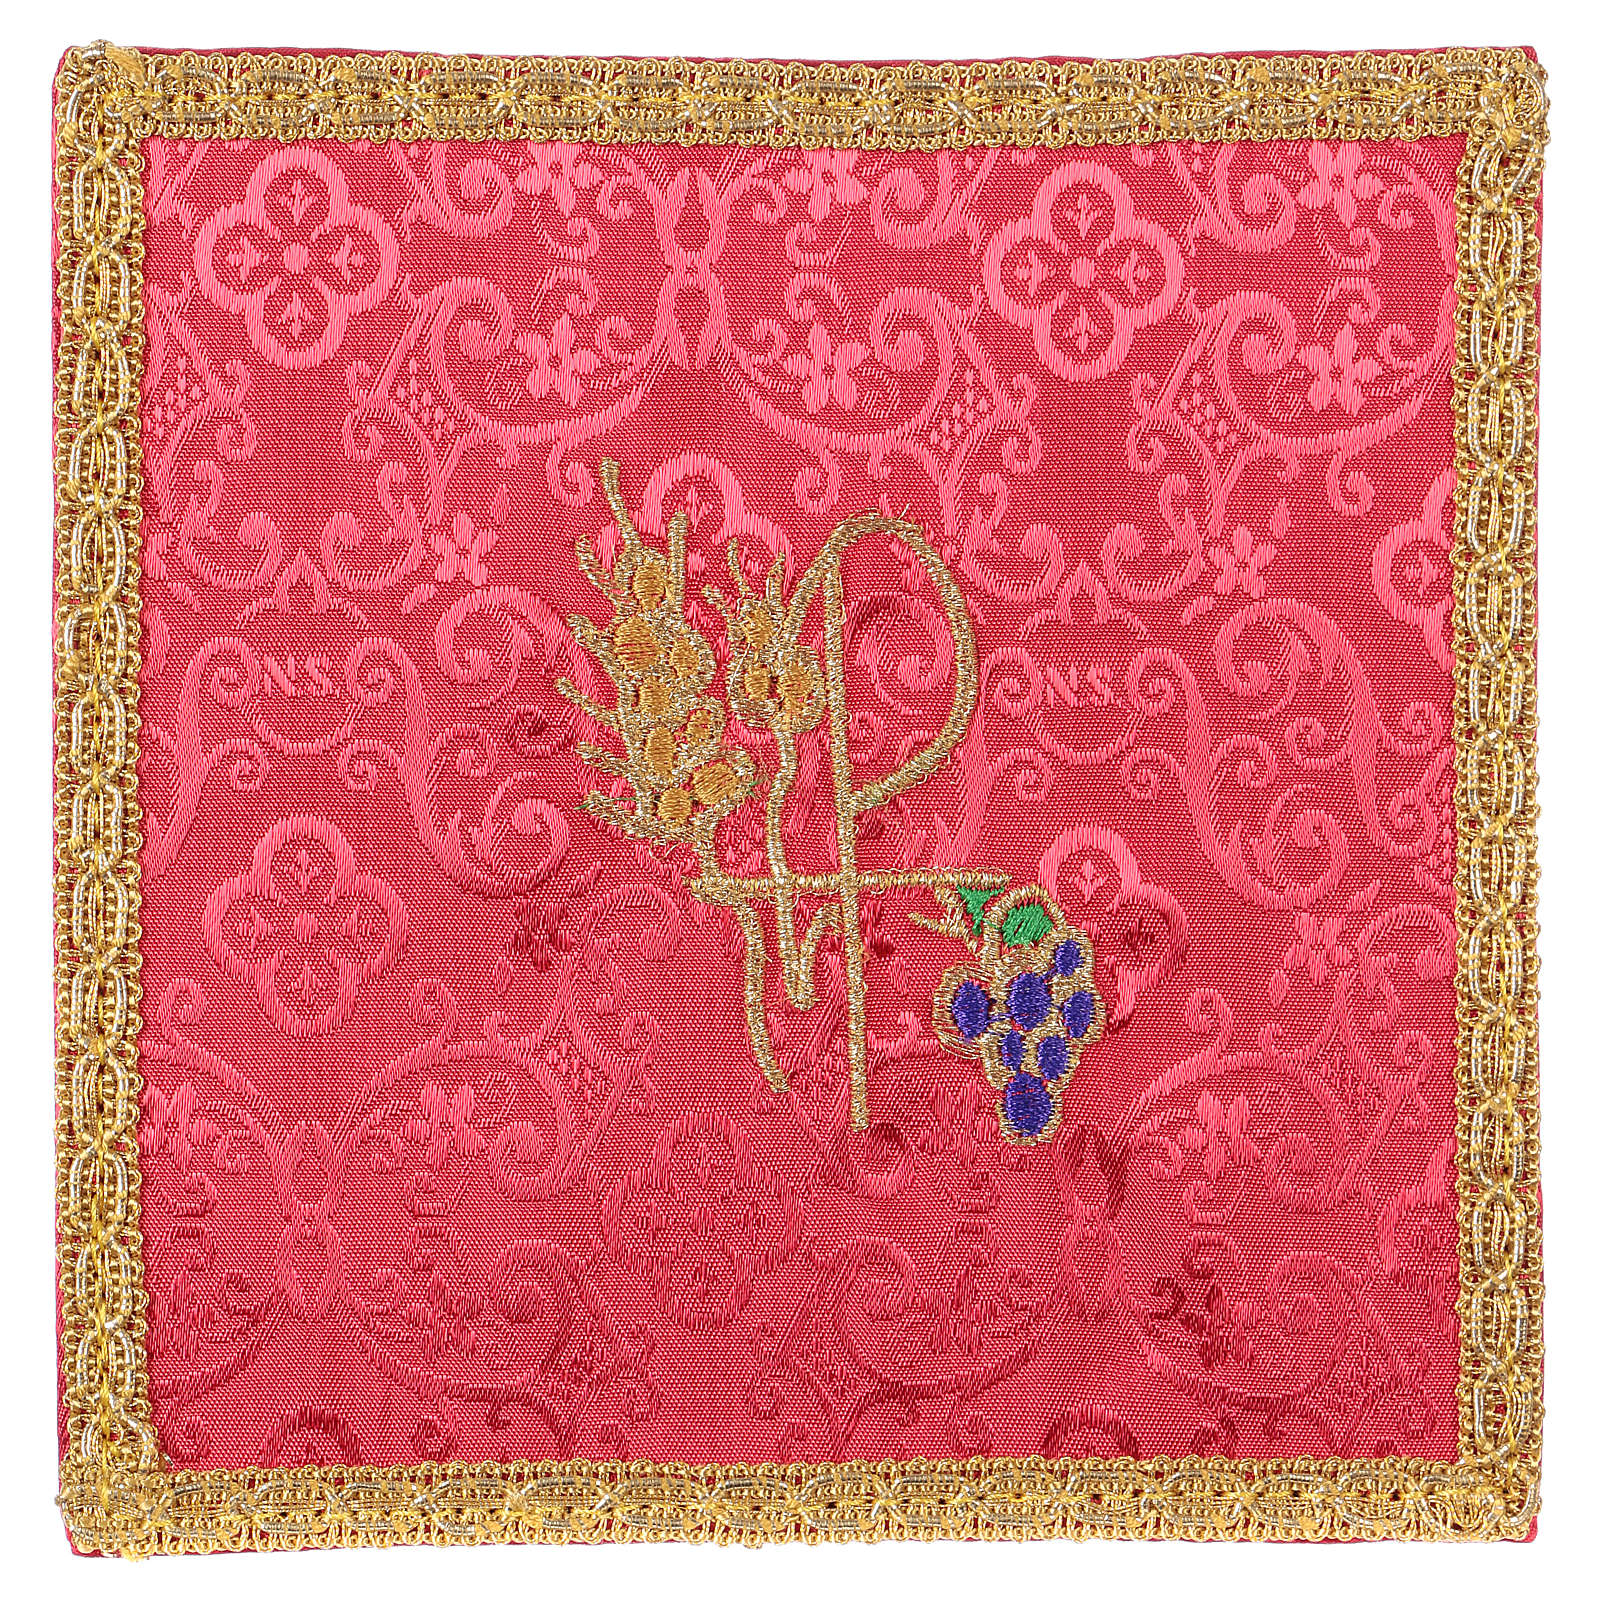 Pale Chi-Rho épi et raisin jacquard rouge 4